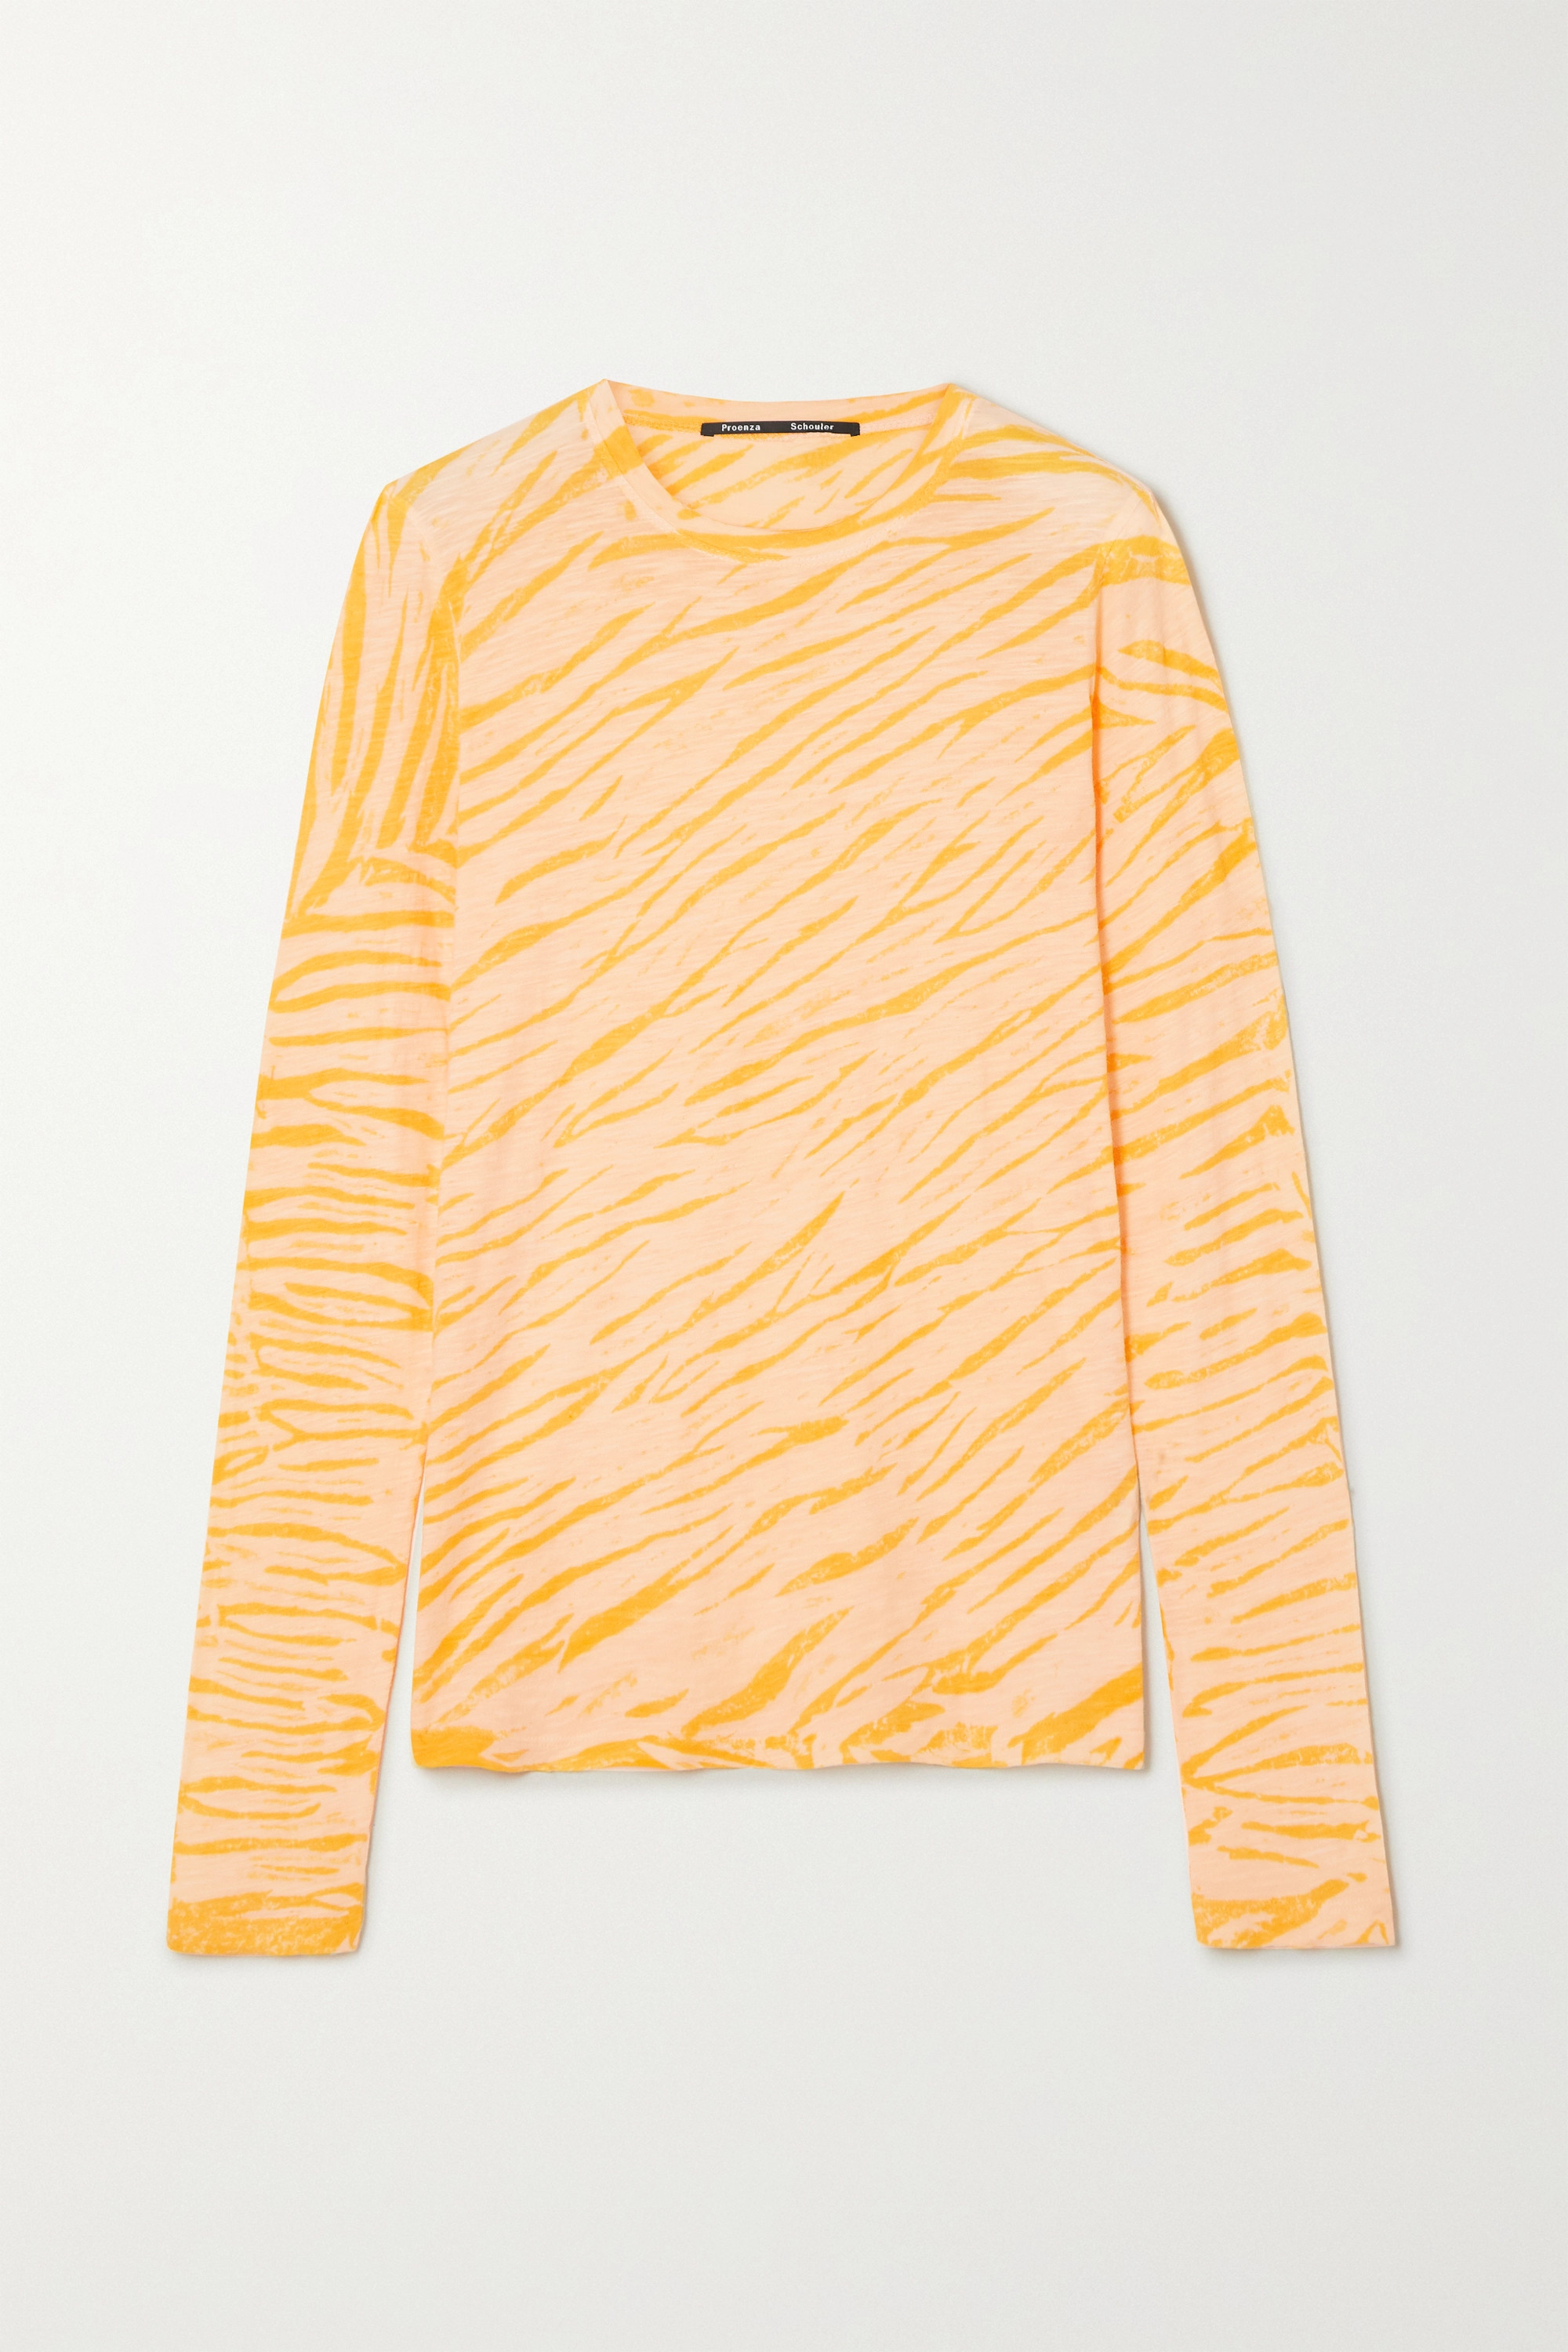 Proenza Schouler Tiger-print tie-dyed cotton-jersey top